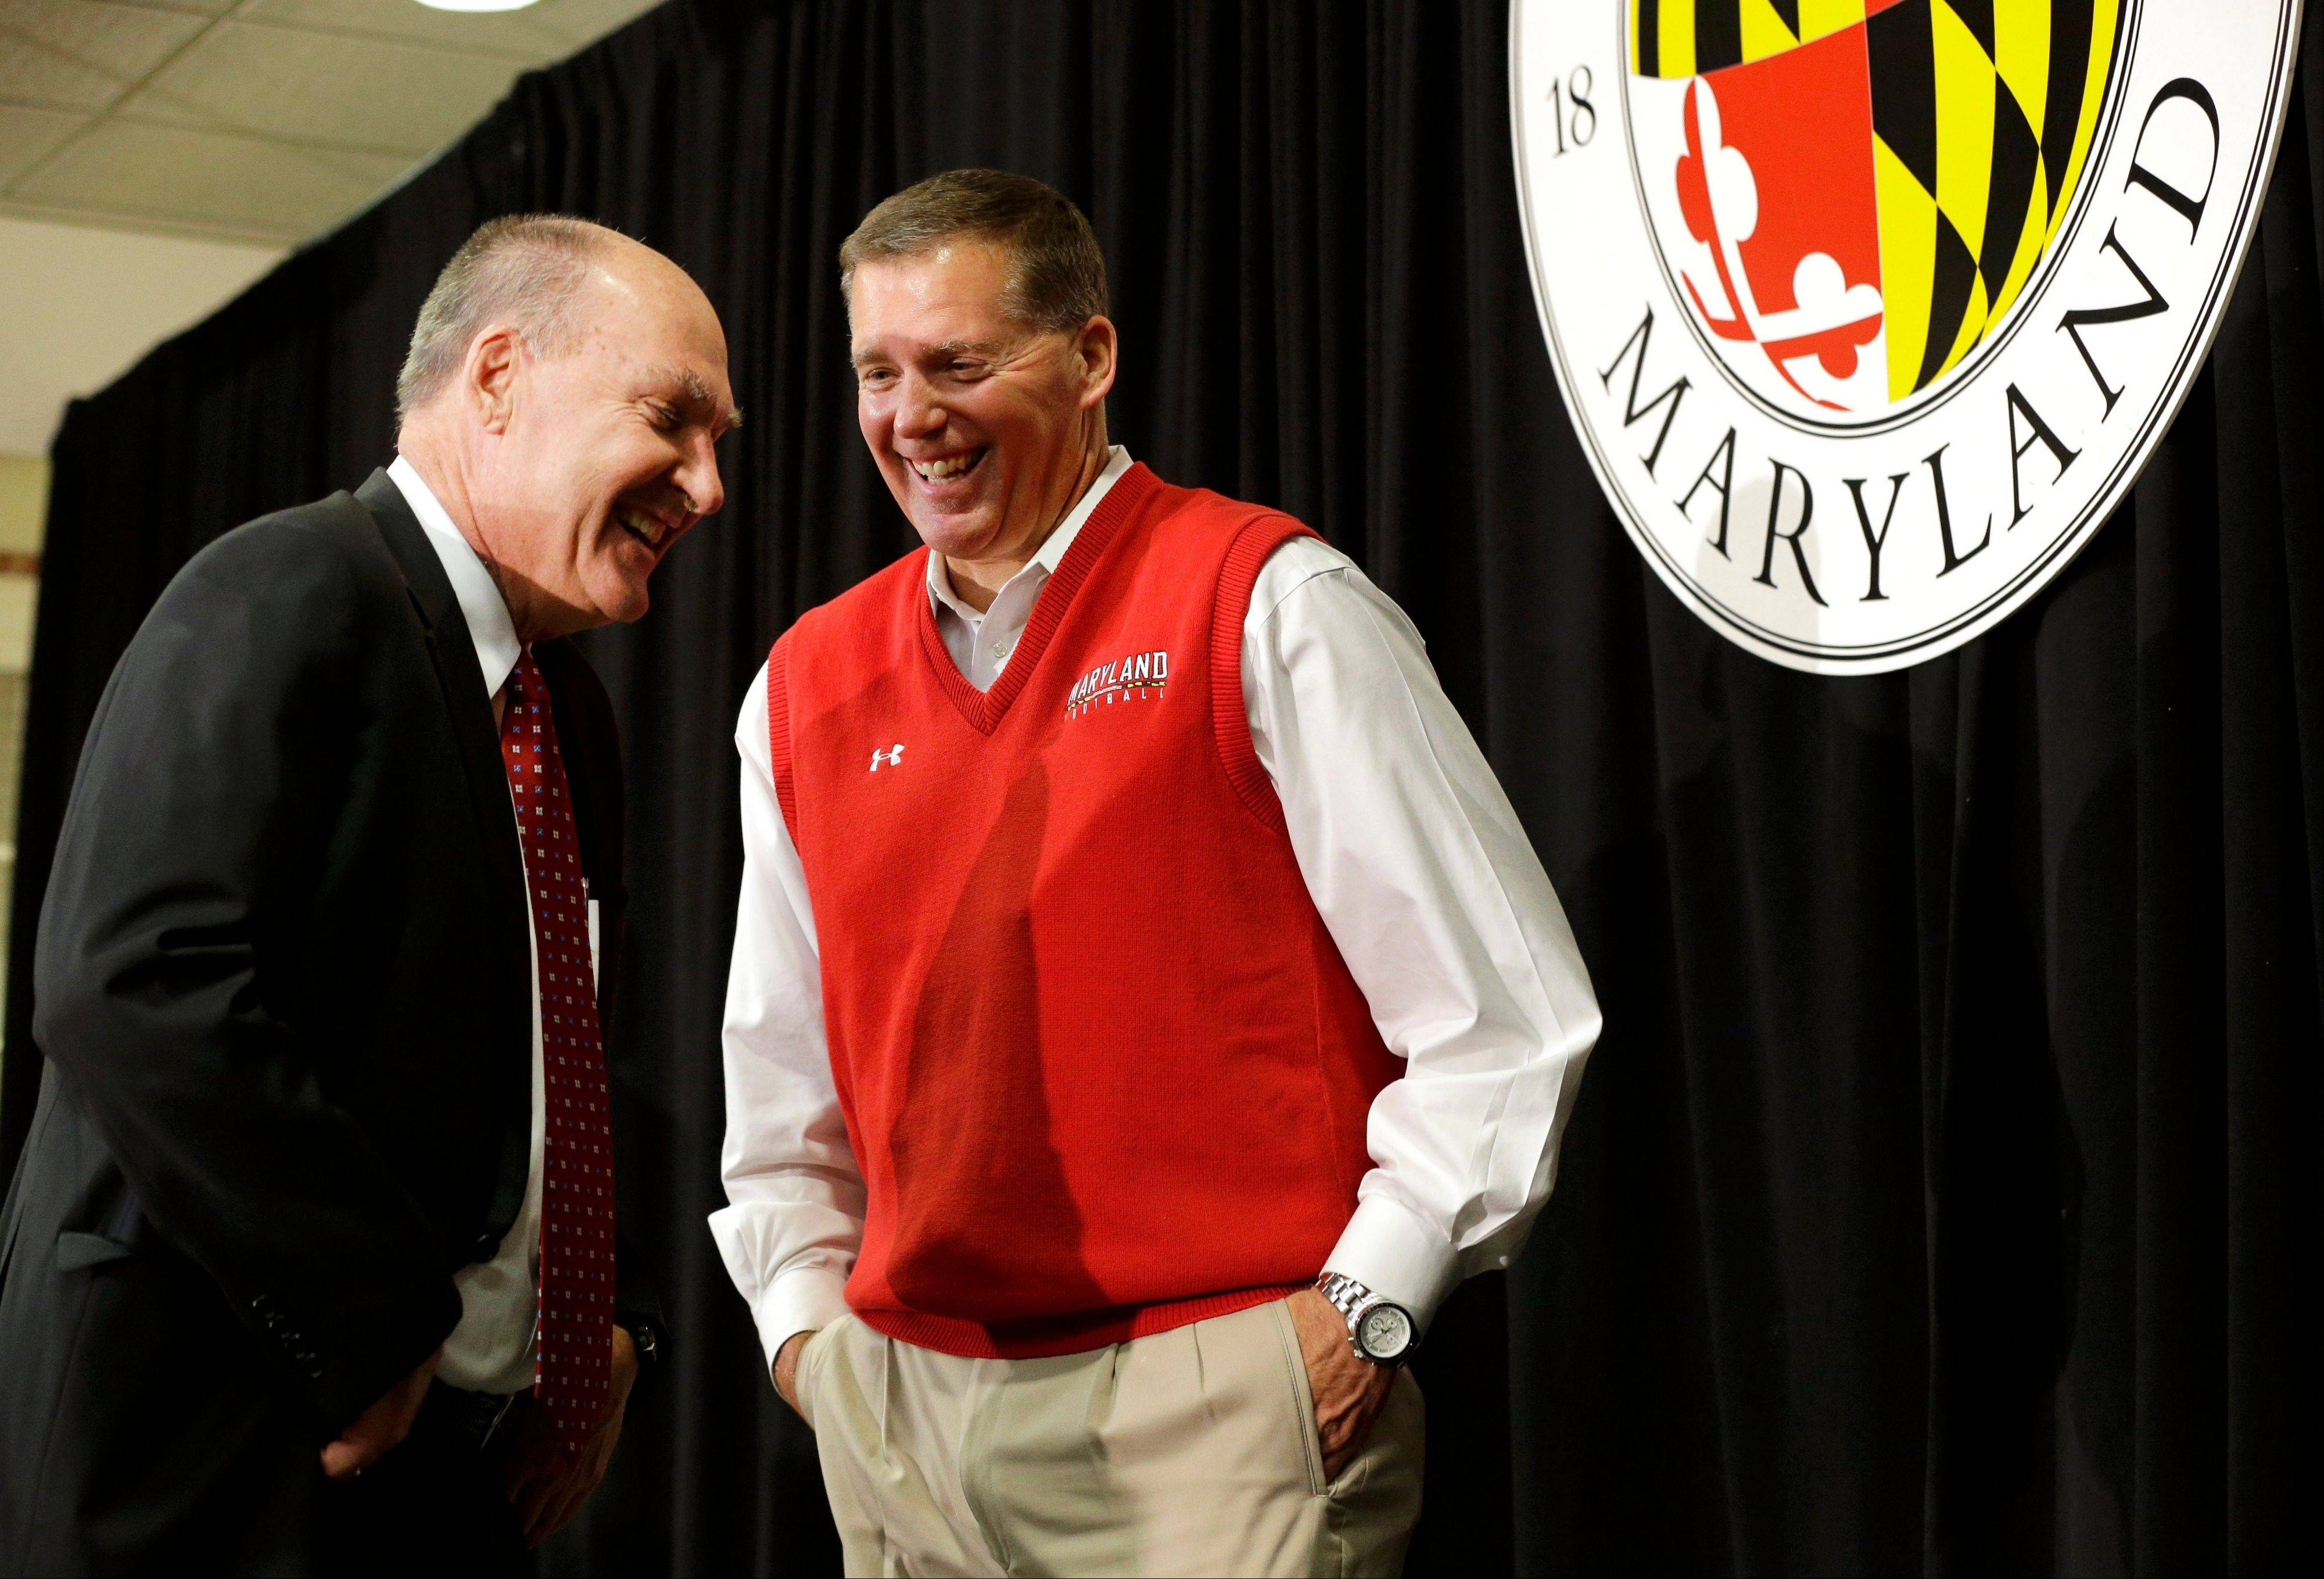 Big Ten Commissioner Jim Delany, left, speaks Monday with Maryland football coach Randy Edsall after a news conference that was held to announce Maryland's decision to move to the Big Ten. Edsall, 6-17 in his two seasons at the school, is certain Maryland will flourish in its new conference.